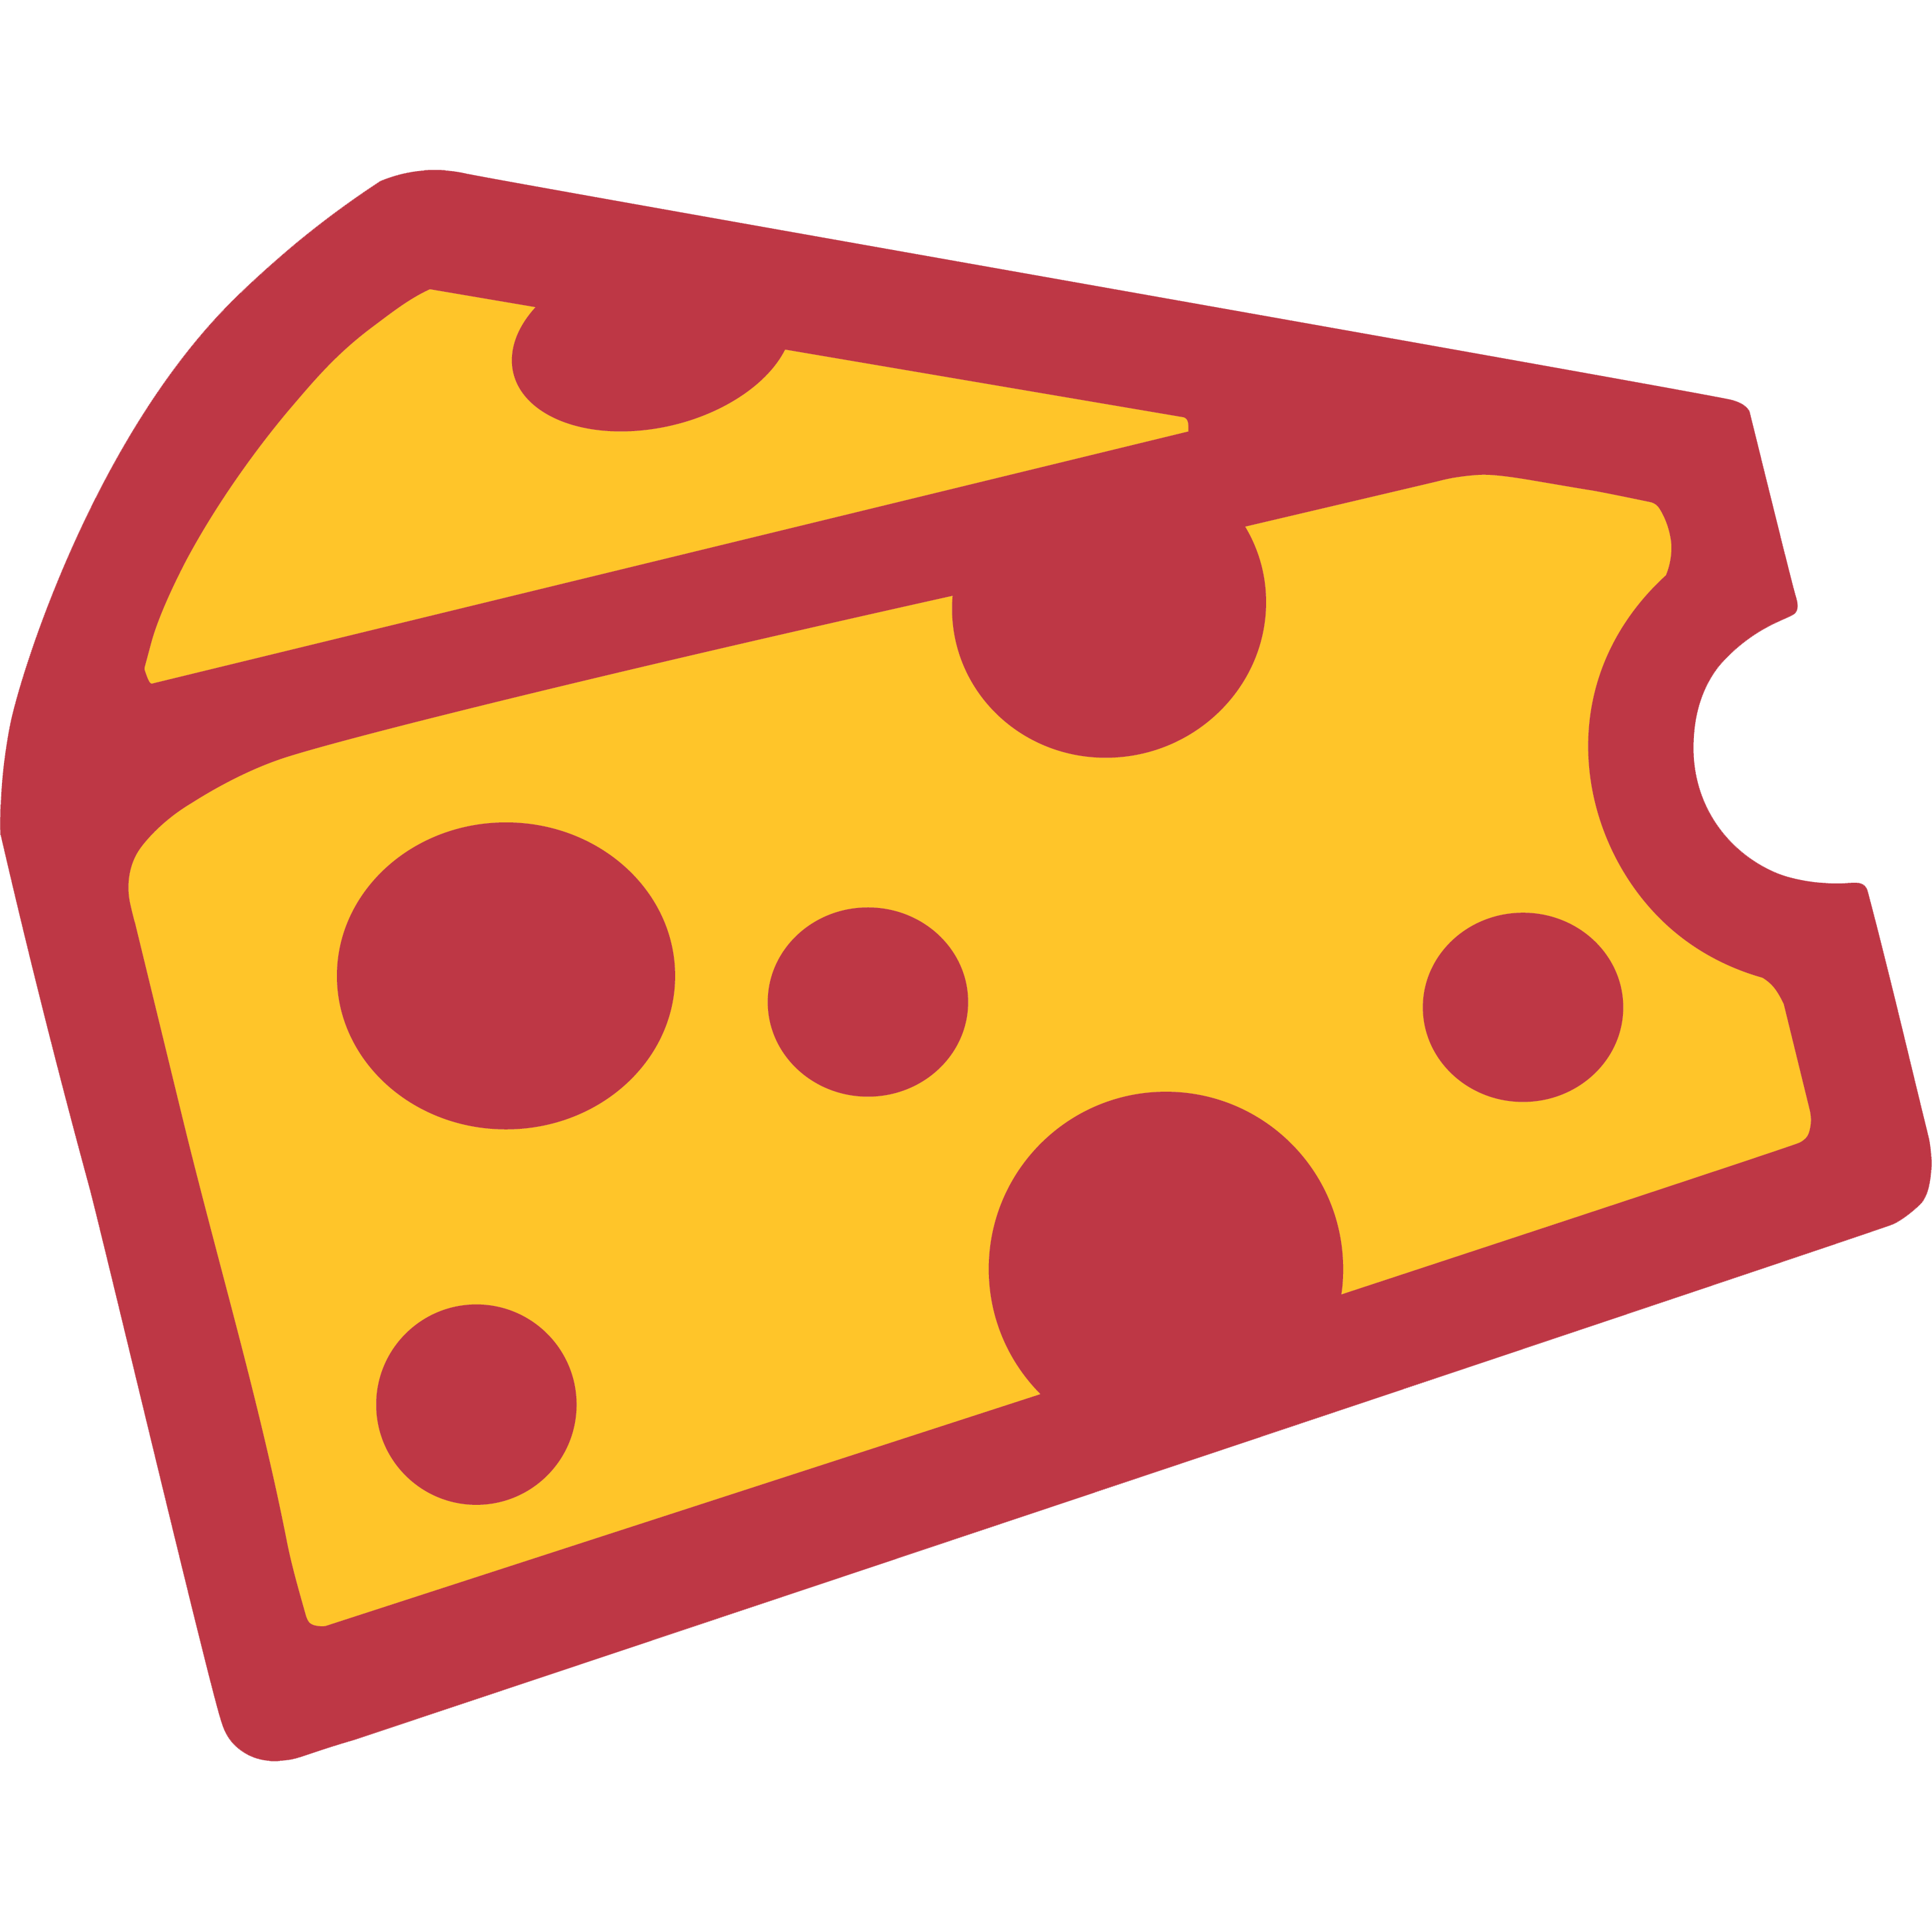 The Free Cheese